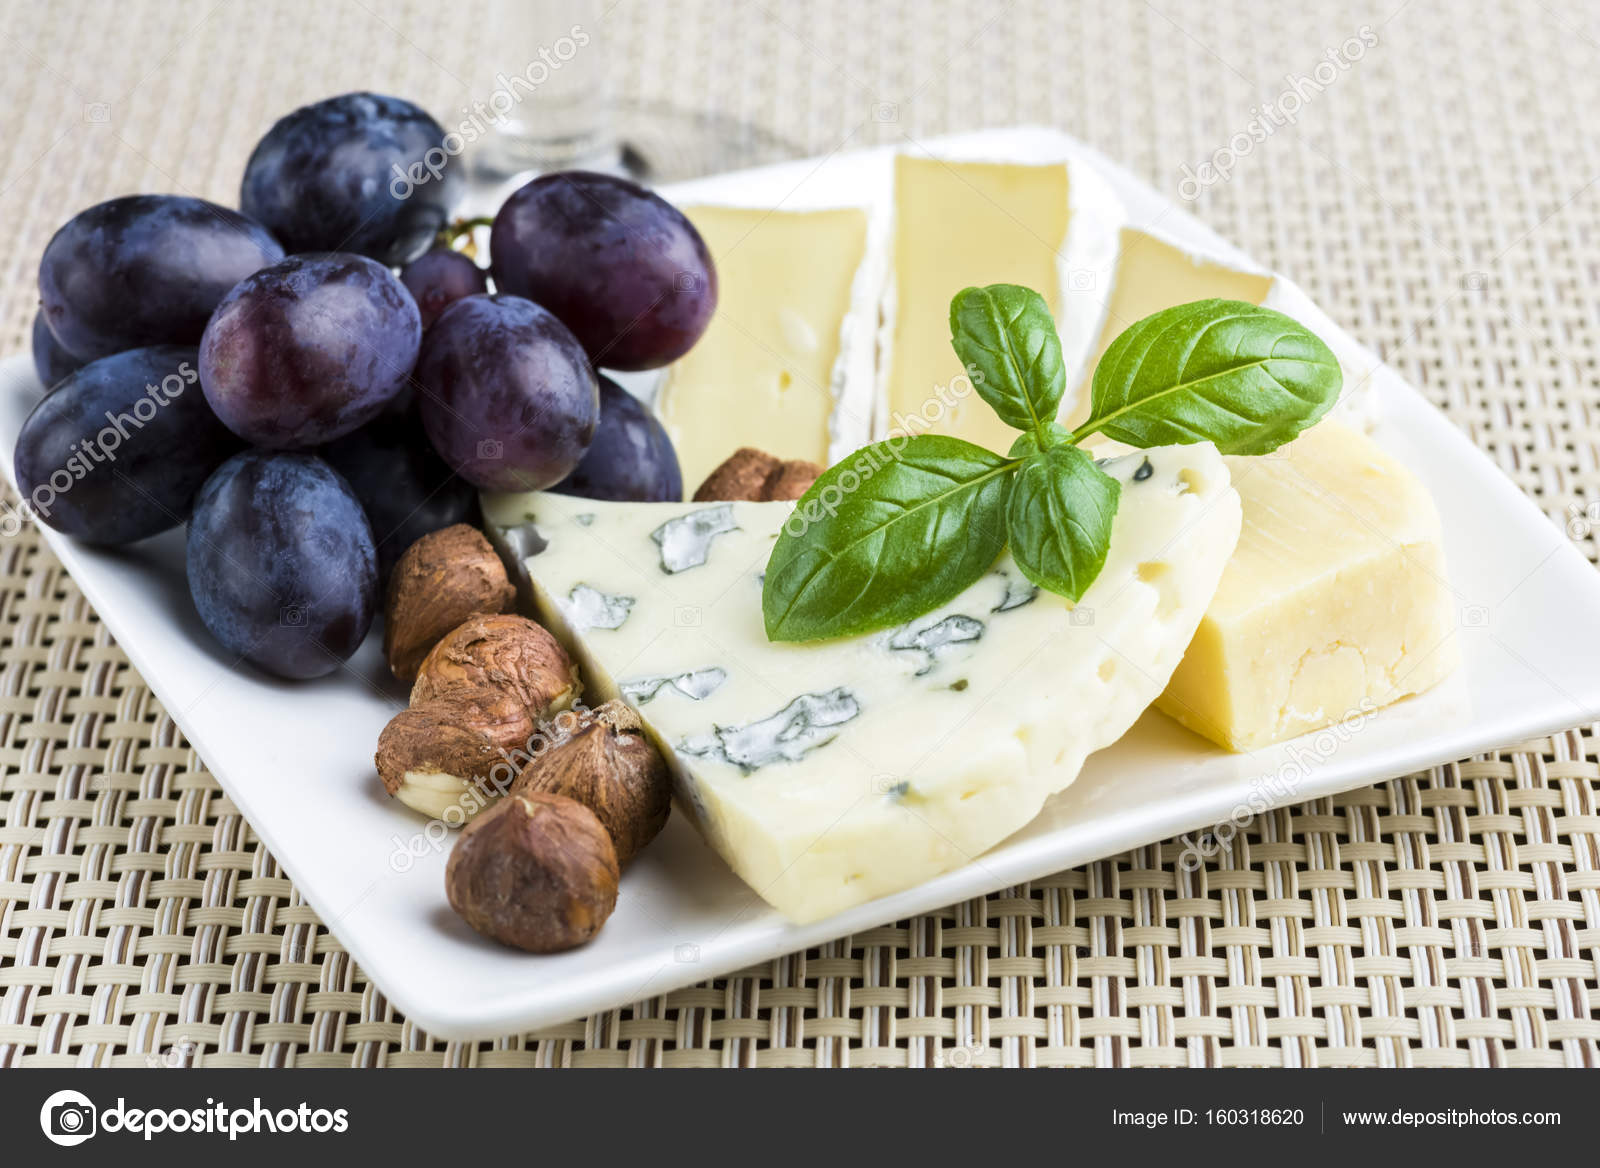 Appetizers - small plate of blue cheese camembert cheese grapes and walnuts \u2014 Photo by rlat28 & Small plate of cheese and fruit \u2014 Stock Photo © rlat28 #160318620